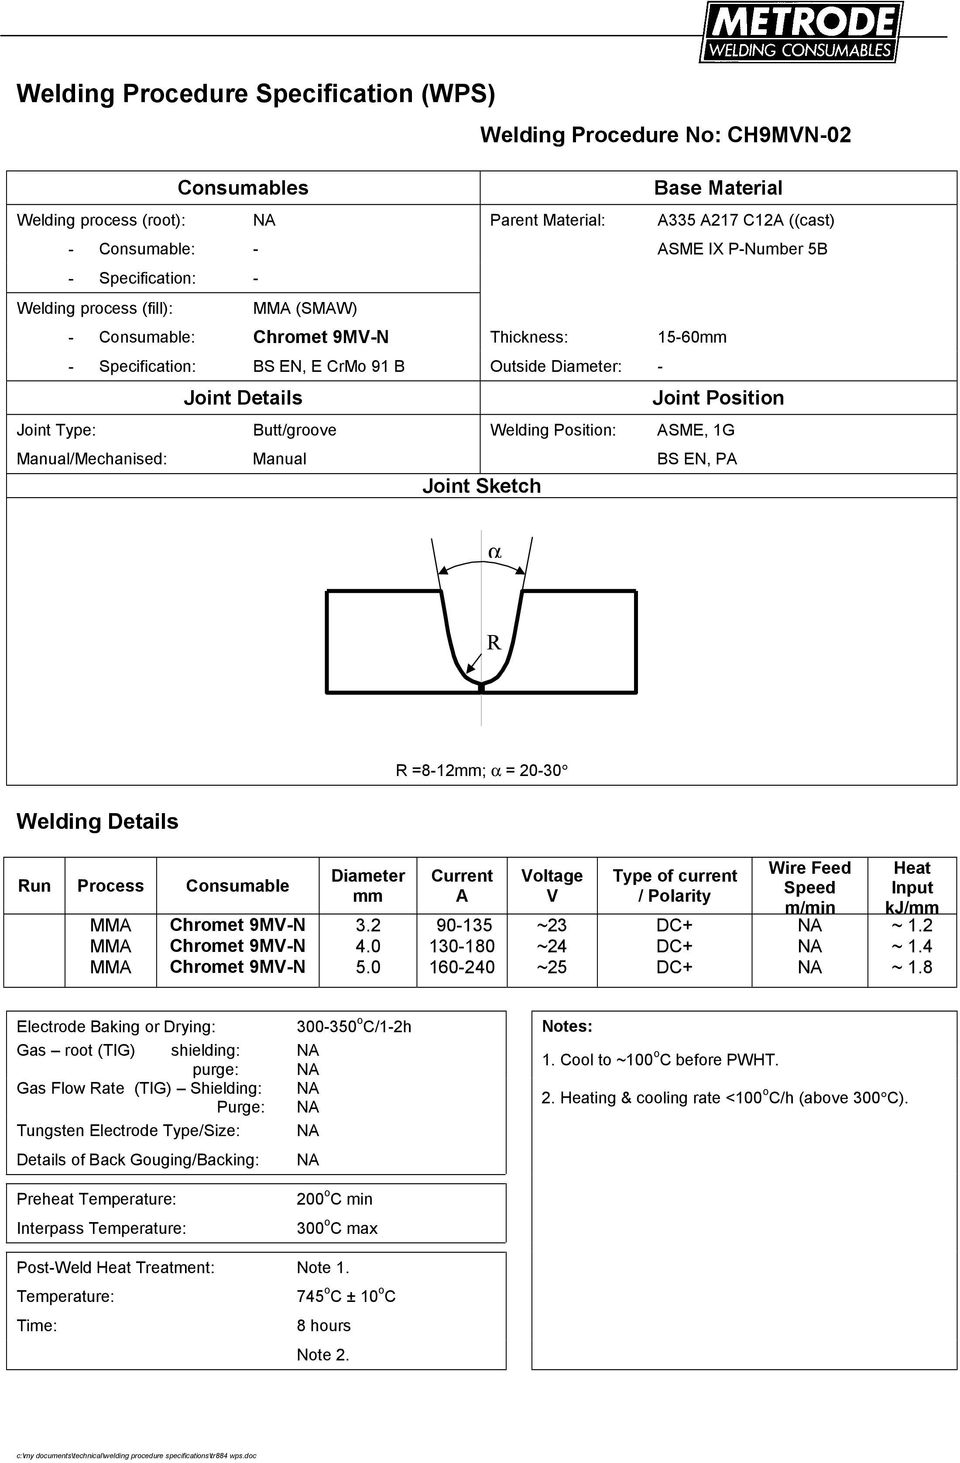 Welding Procedure Specification Wps Pdf Pwht Wiring Diagram 0 50 90 35 30 80 60 240 Oltae 23 25